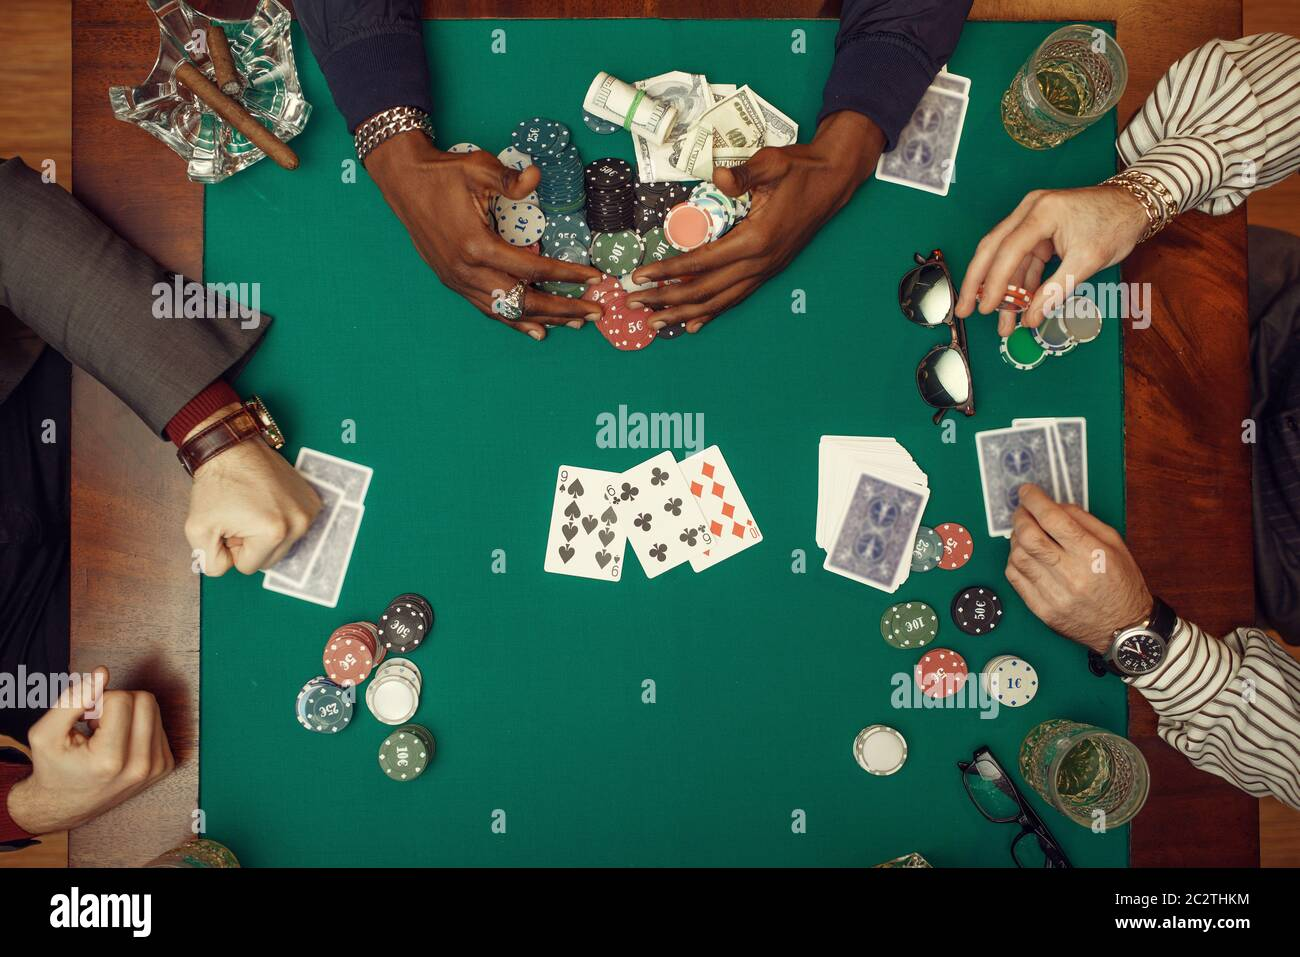 Poker Players Hands With Cards Top View Gaming Table With Green